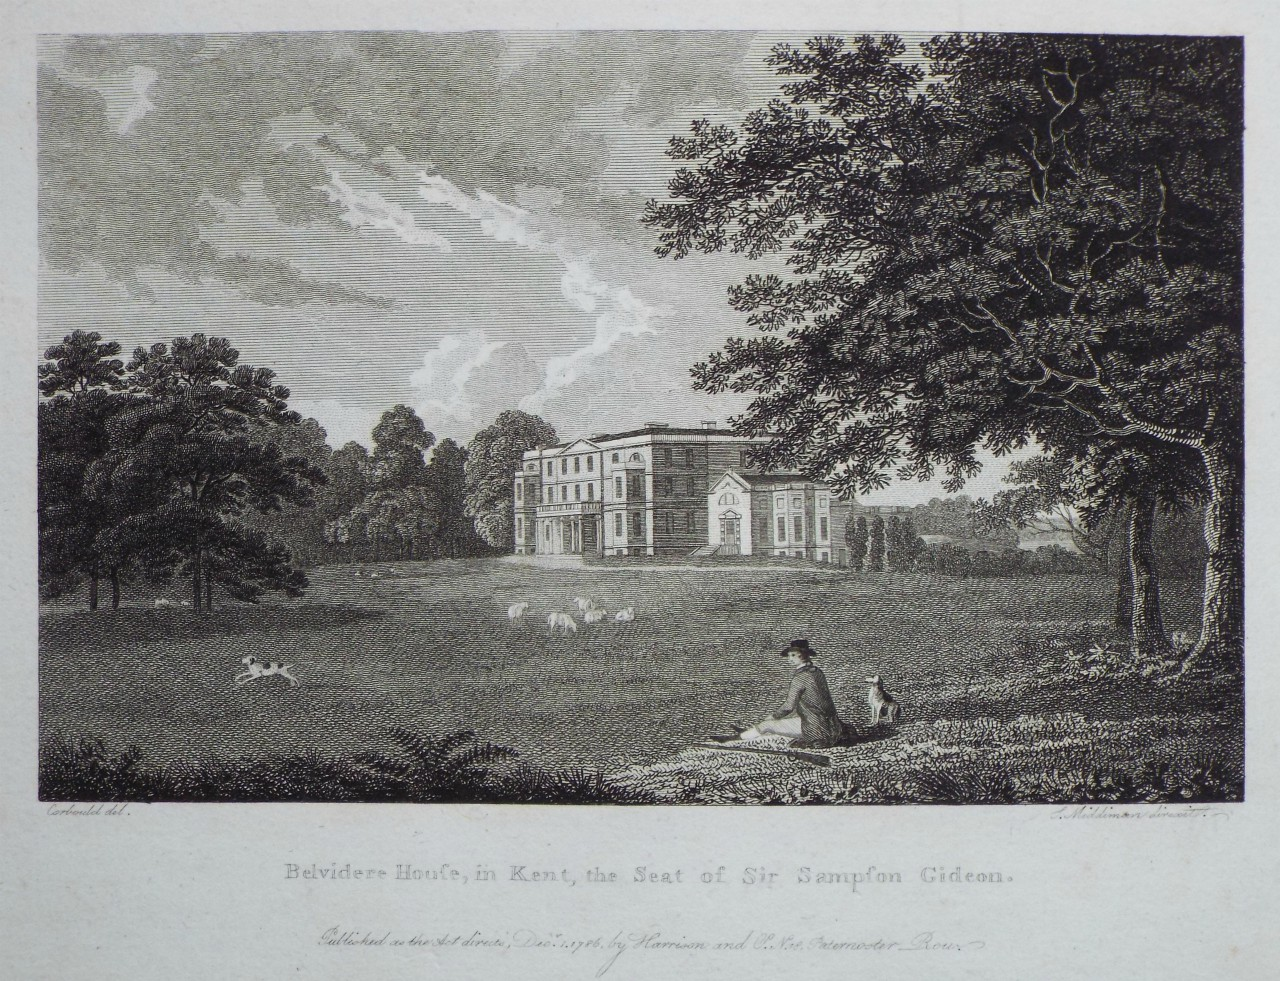 Print - Belvidere House, in Kent, the Seat of Sir Sampson Gideon. - Middiman